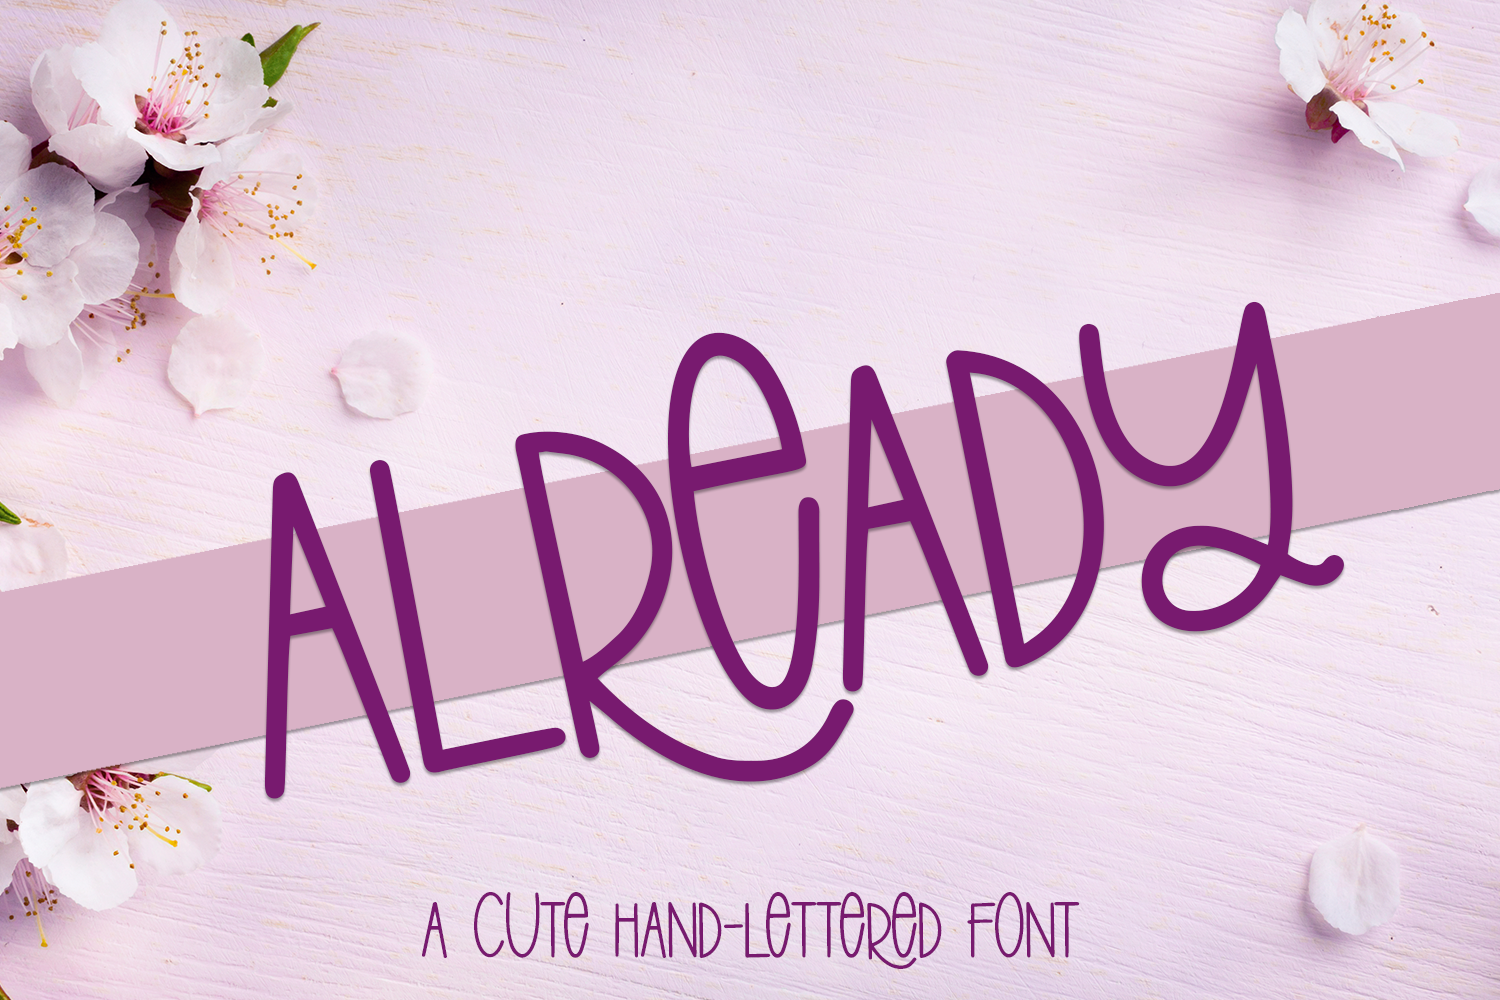 Already - A Cute Hand-Lettered Font example image 1